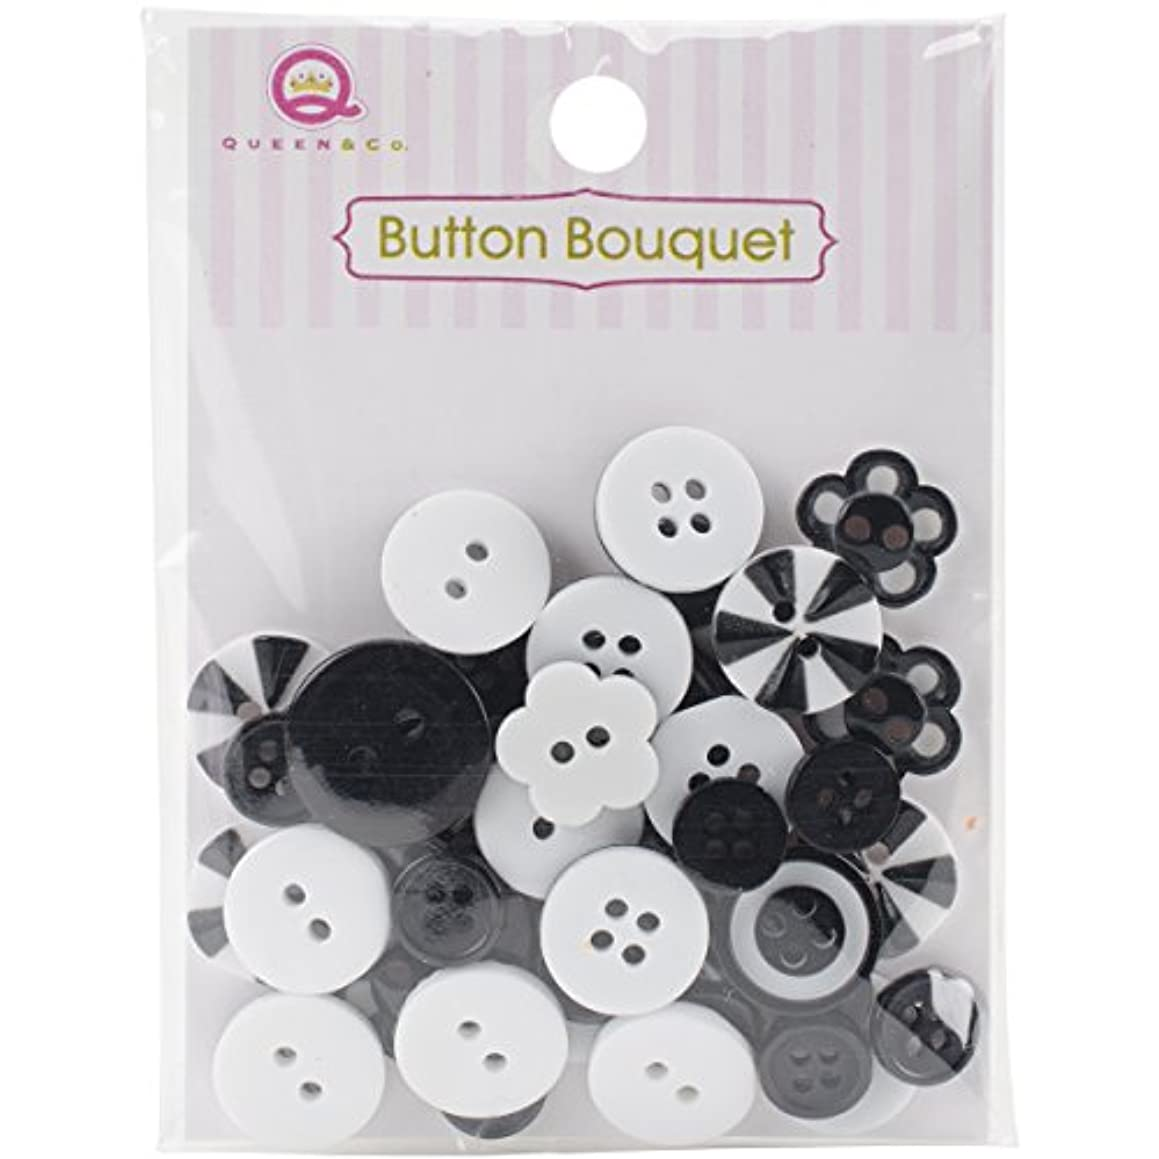 Queen & Co Button Bouquet Assorted Color Size and Shaped Buttons (36 Pack), Black